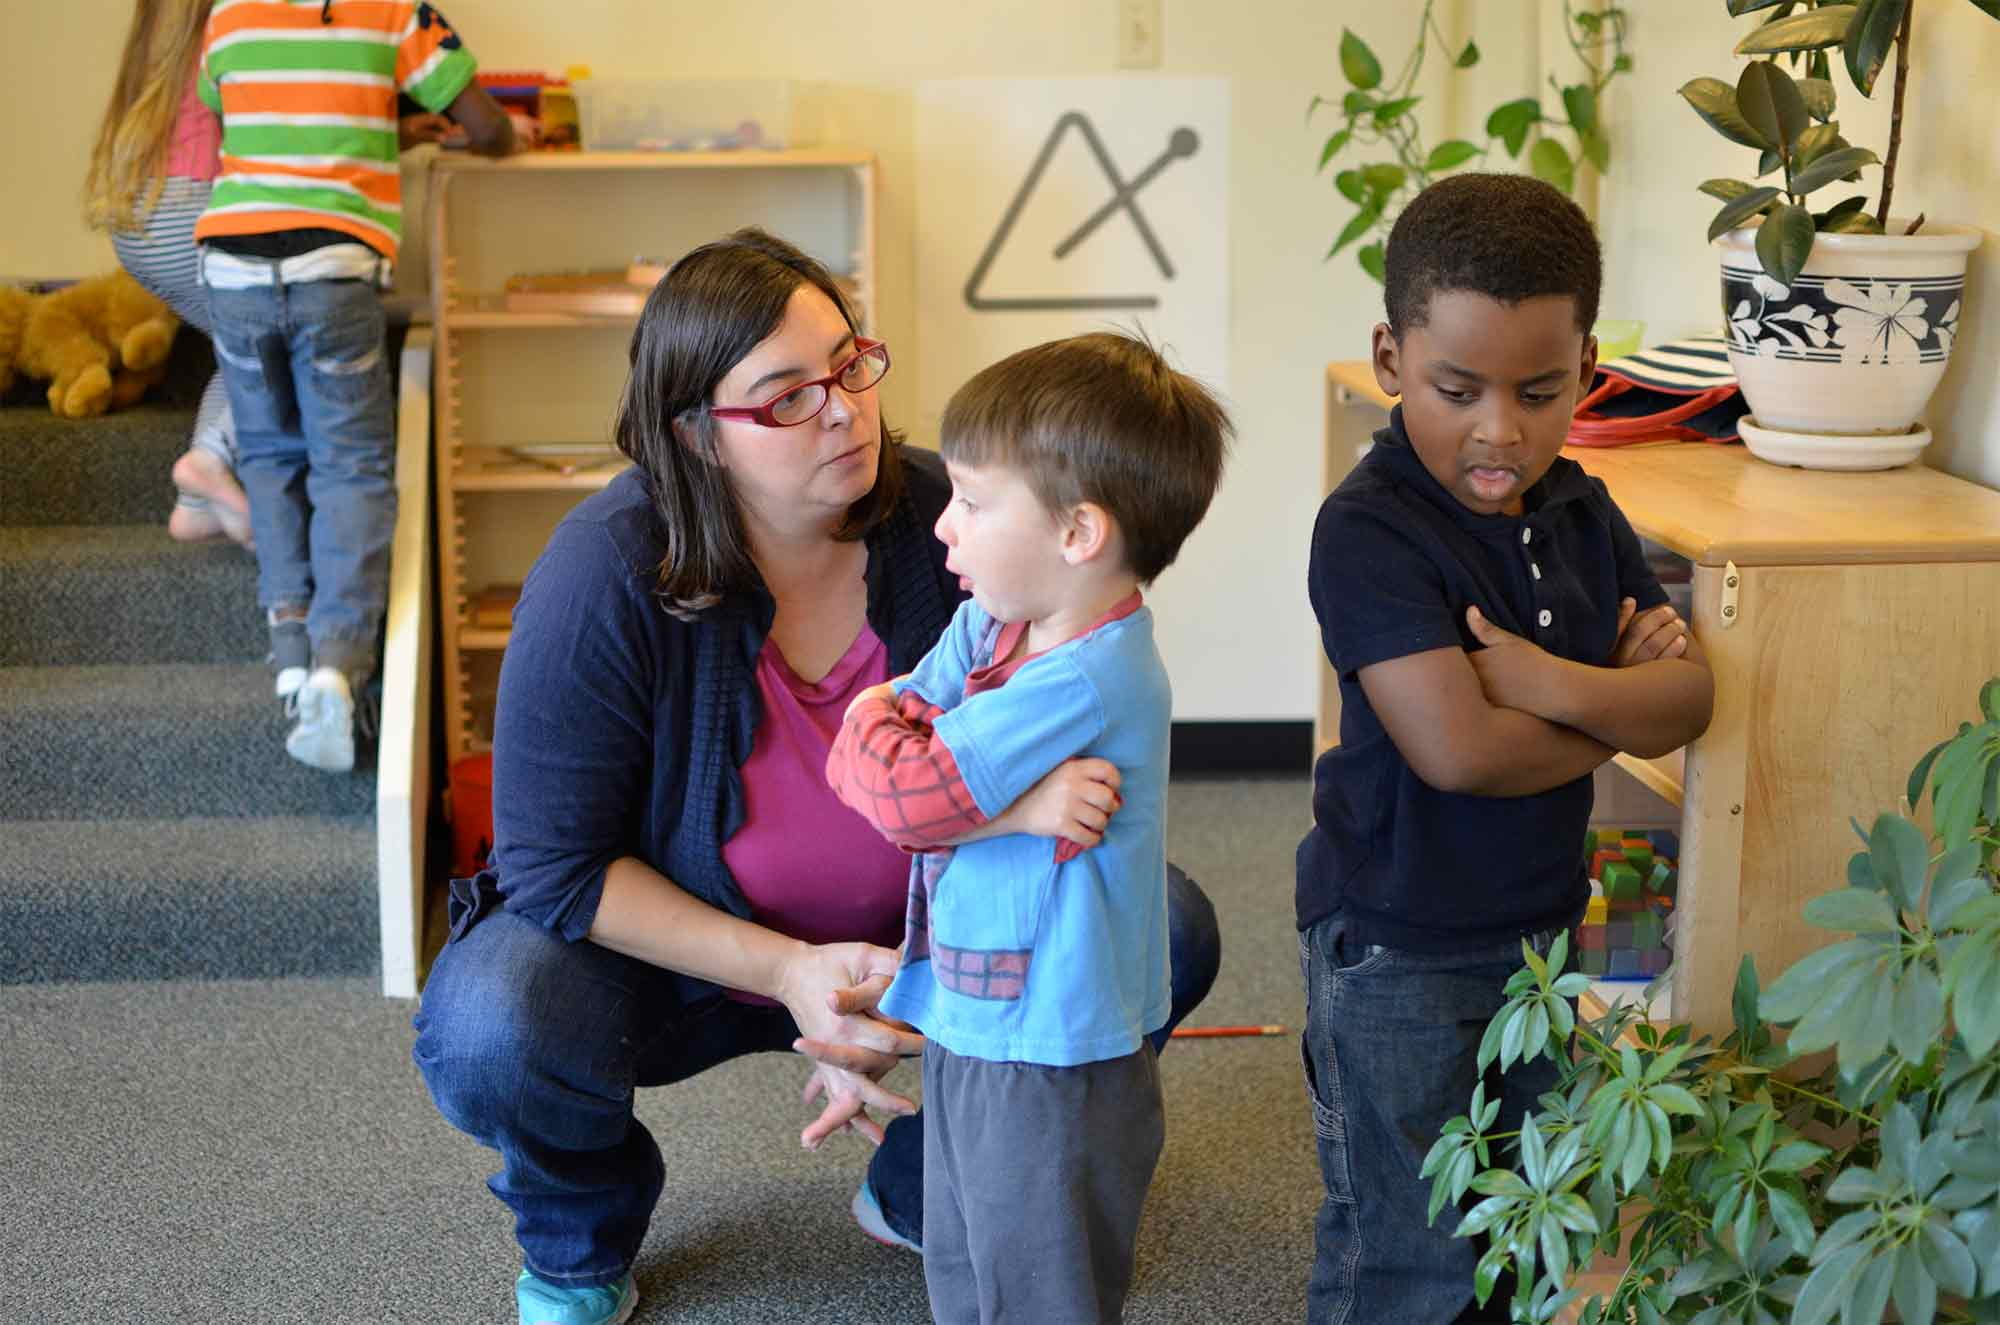 How To Teach Conflict Resolution To Children Through Play